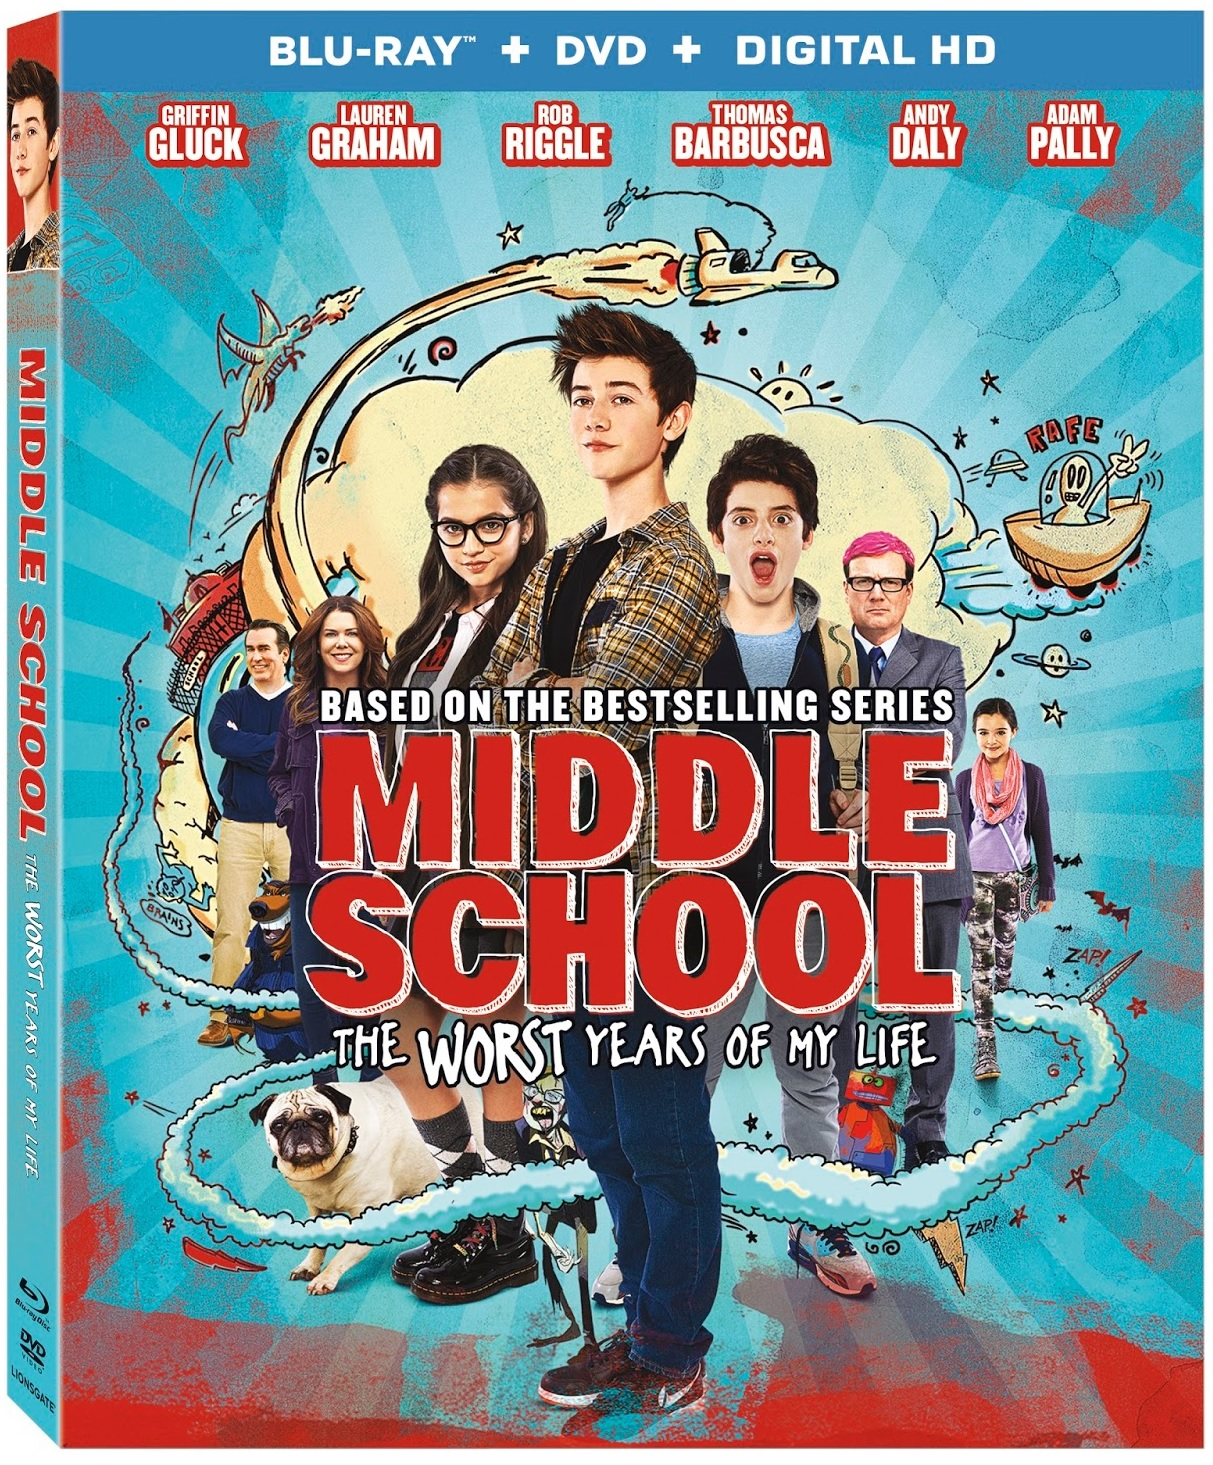 Middle School The Worst Years of My Life Blu-ray Review